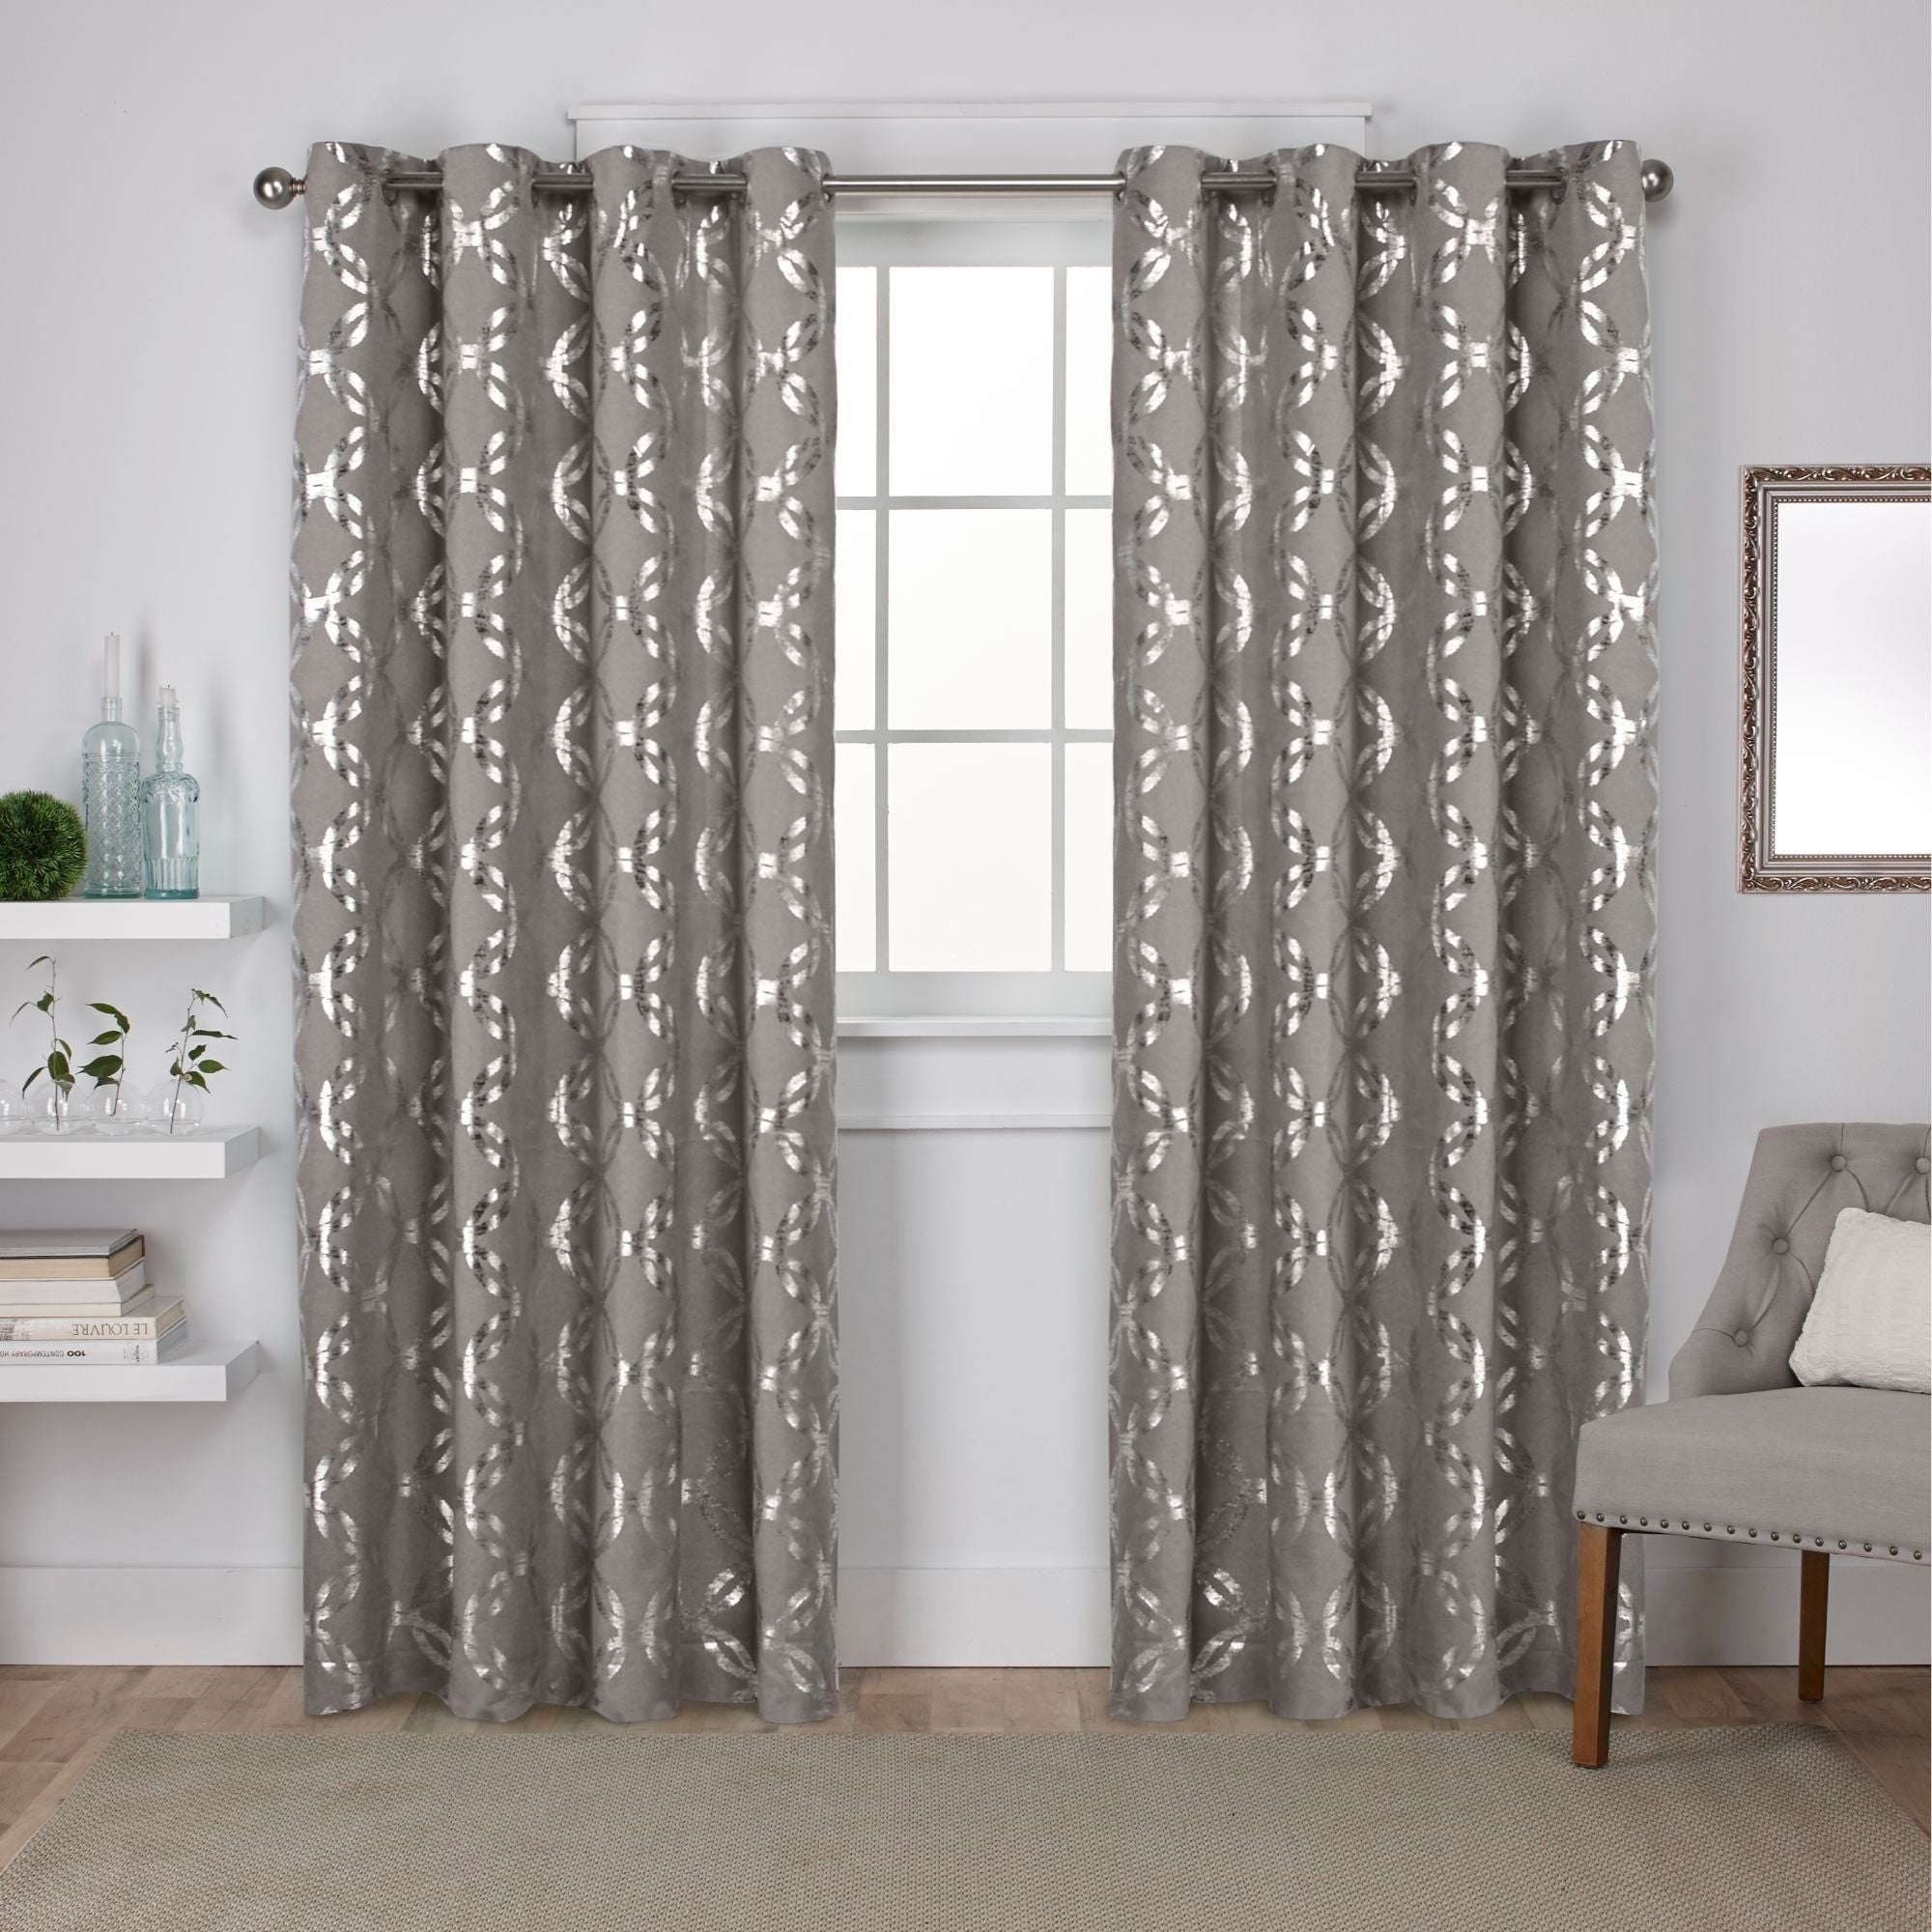 The Curated Nomad Sloat Metallic Geometric Grommet Top Curtain Panel Pair Pertaining To The Curated Nomad Duane Jacquard Grommet Top Curtain Panel Pairs (View 6 of 30)